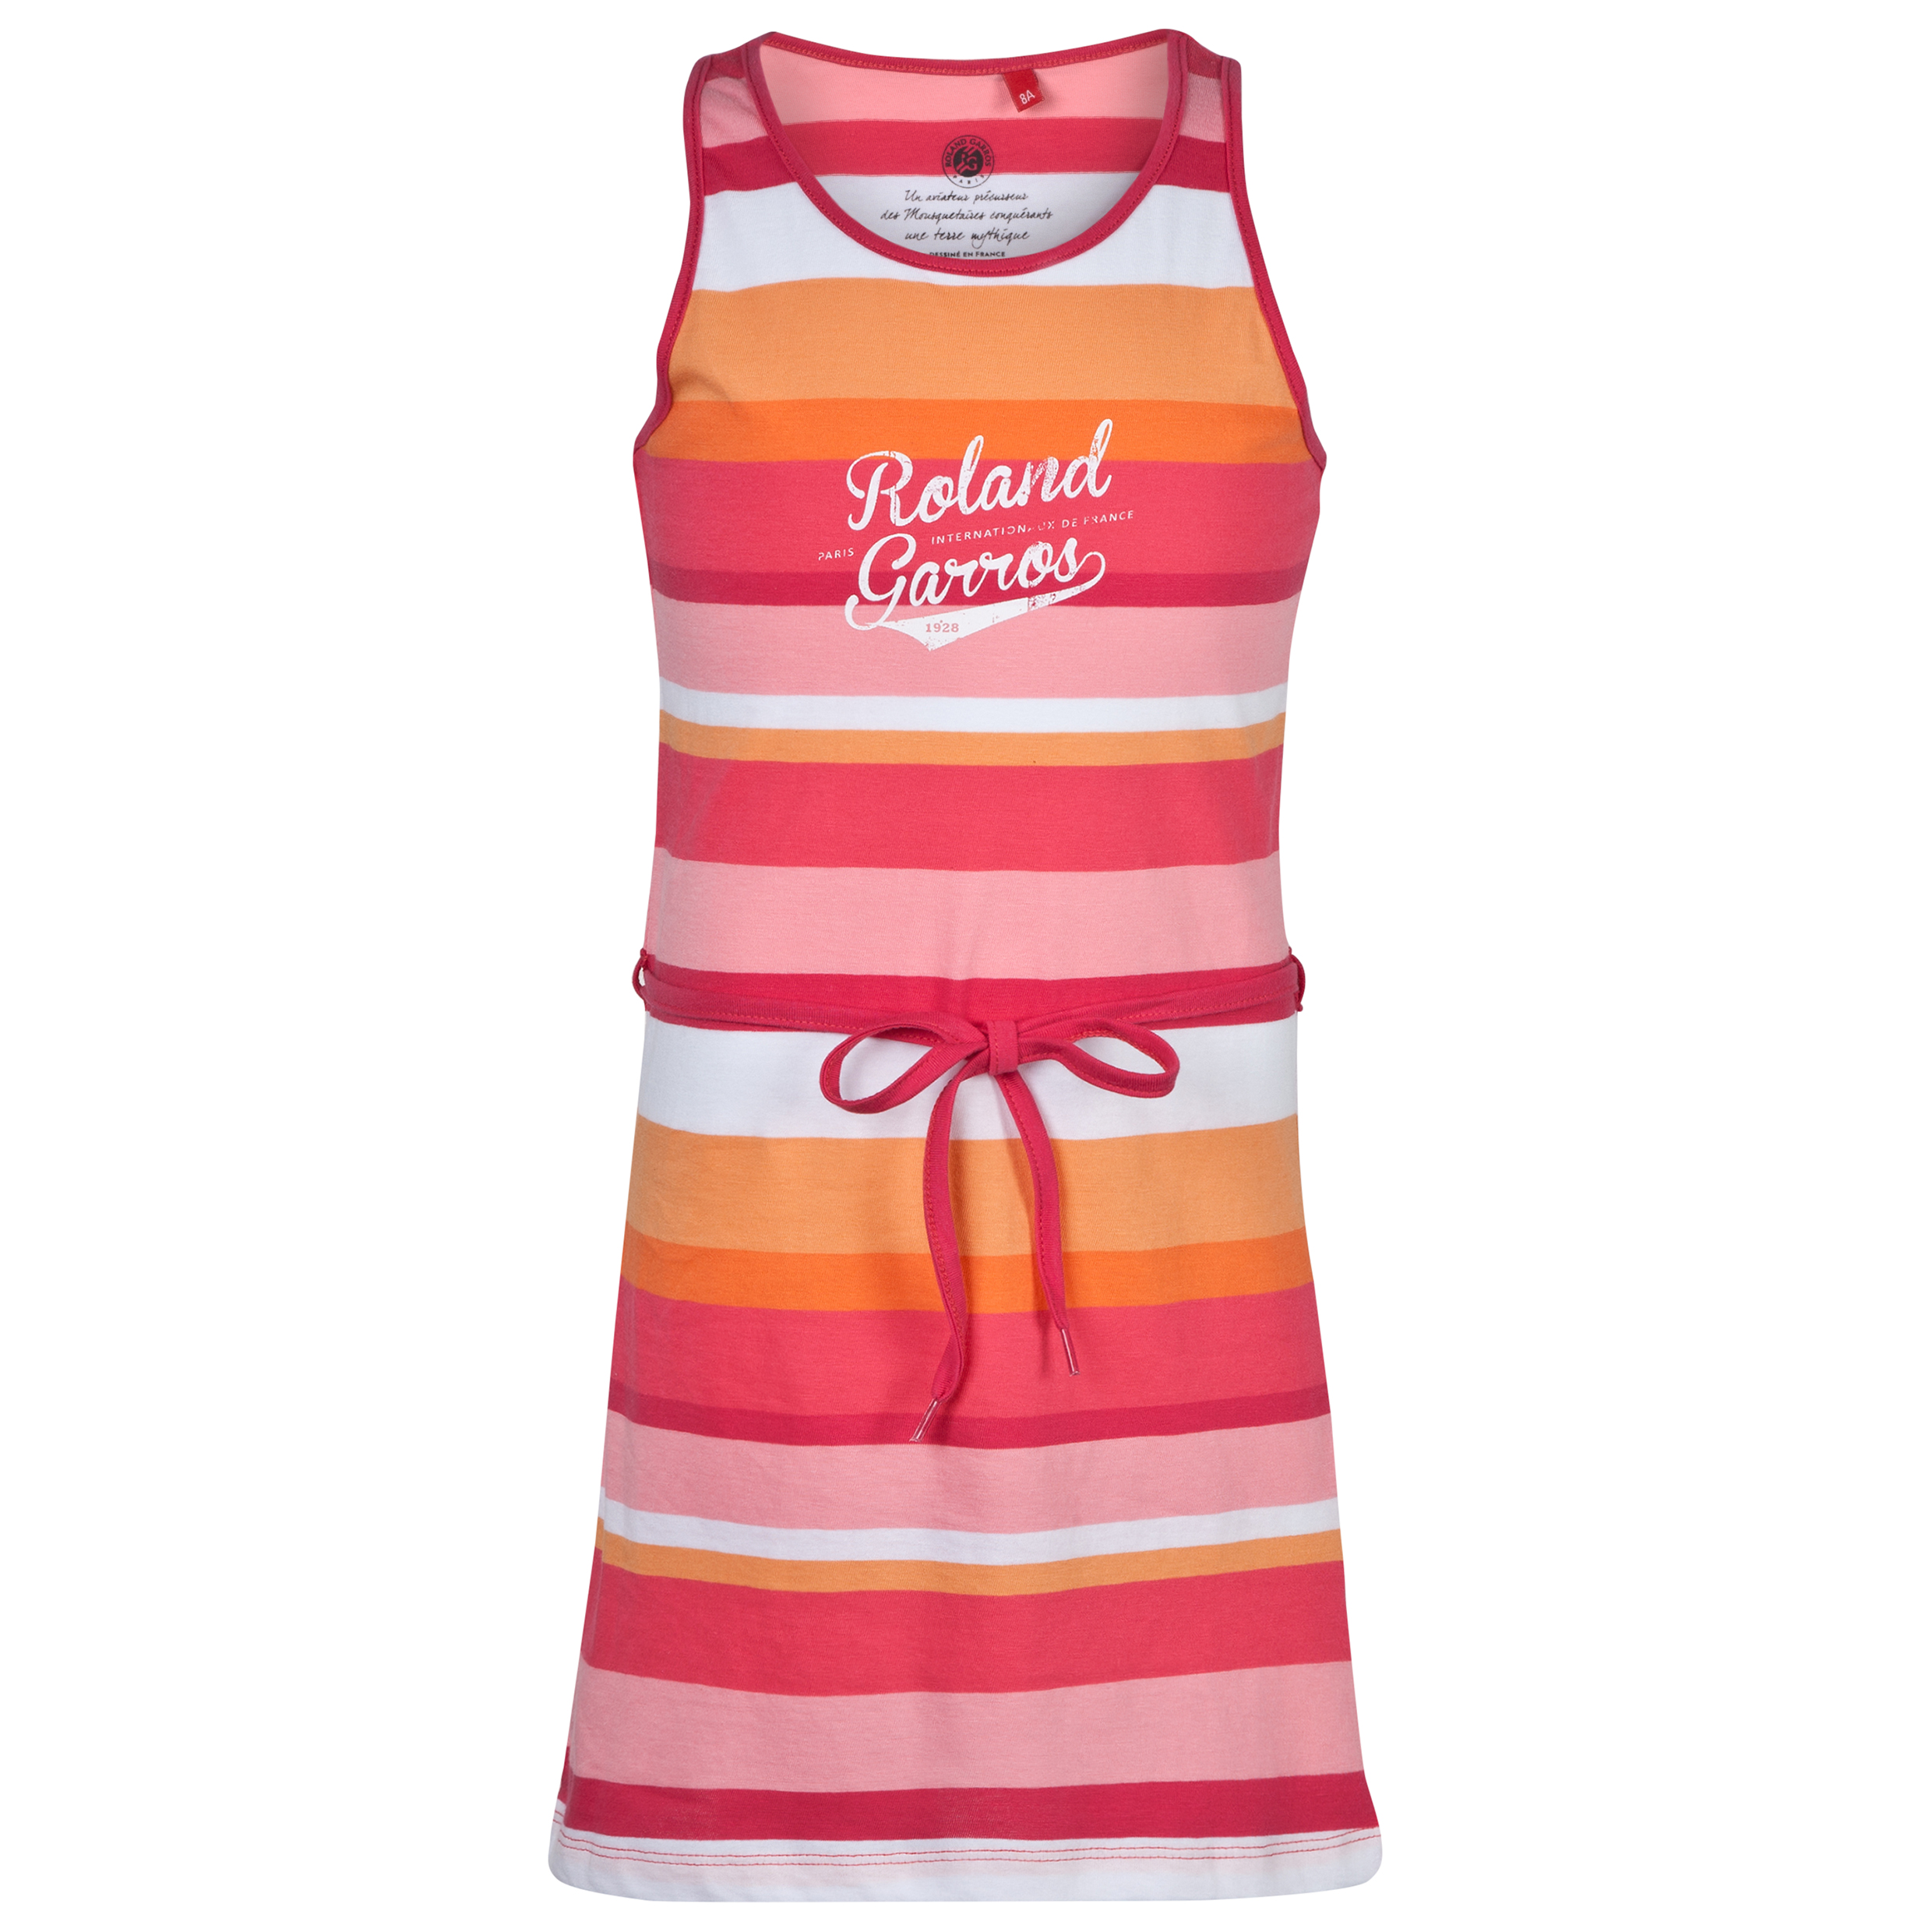 Roland-Garros Dobradia Striped Dress - Girls Red